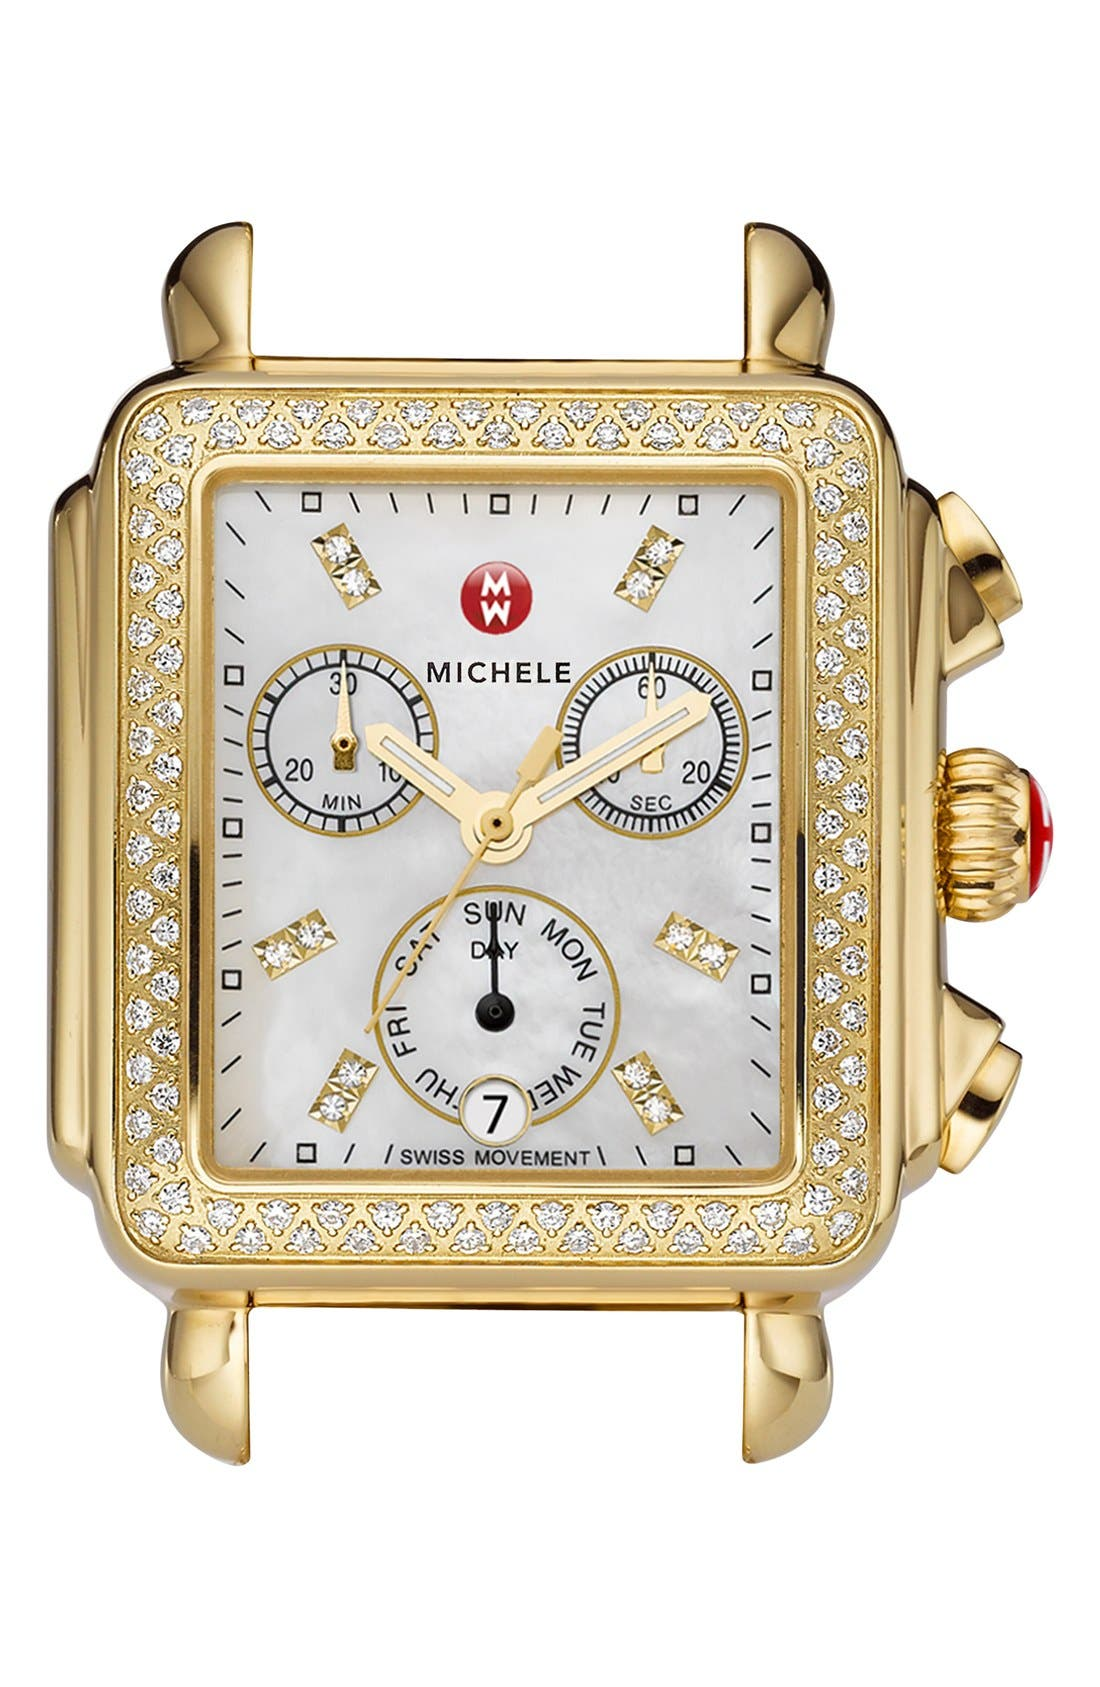 MICHELE Deco Diamond Diamond Dial Gold Plated Watch Case, 33mm x 35mm